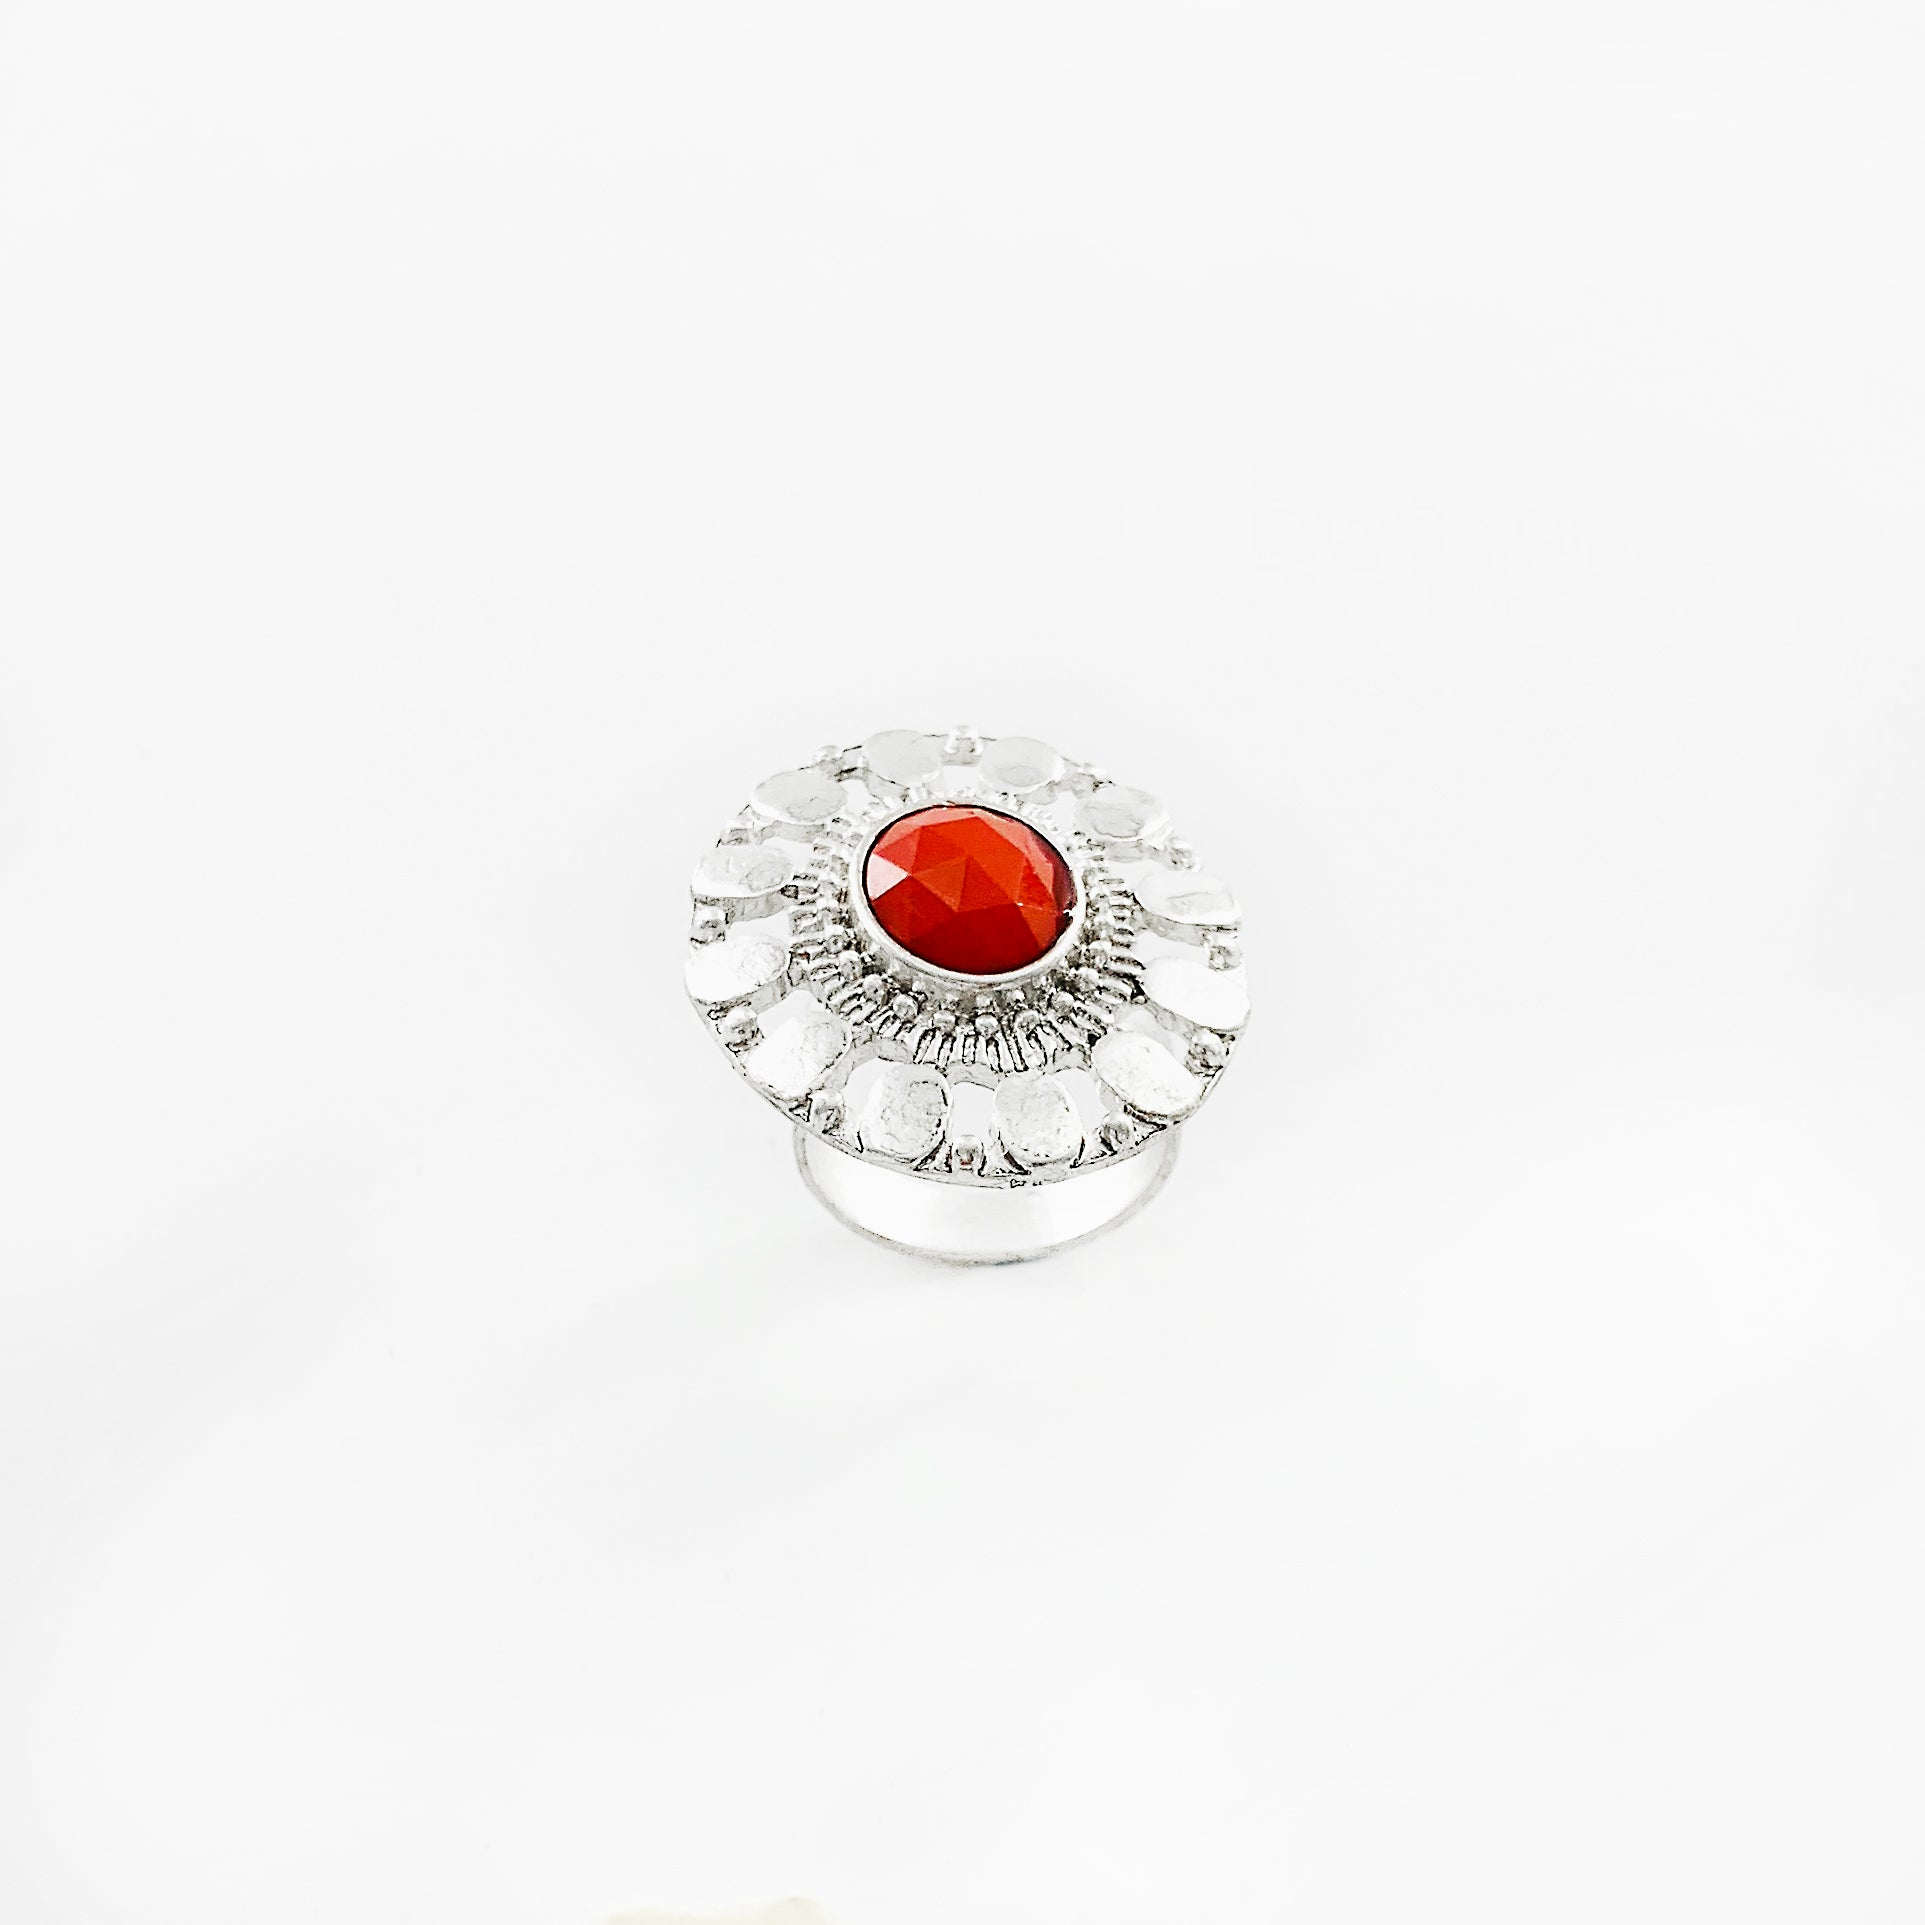 Art deco inspired silver ring with red stone